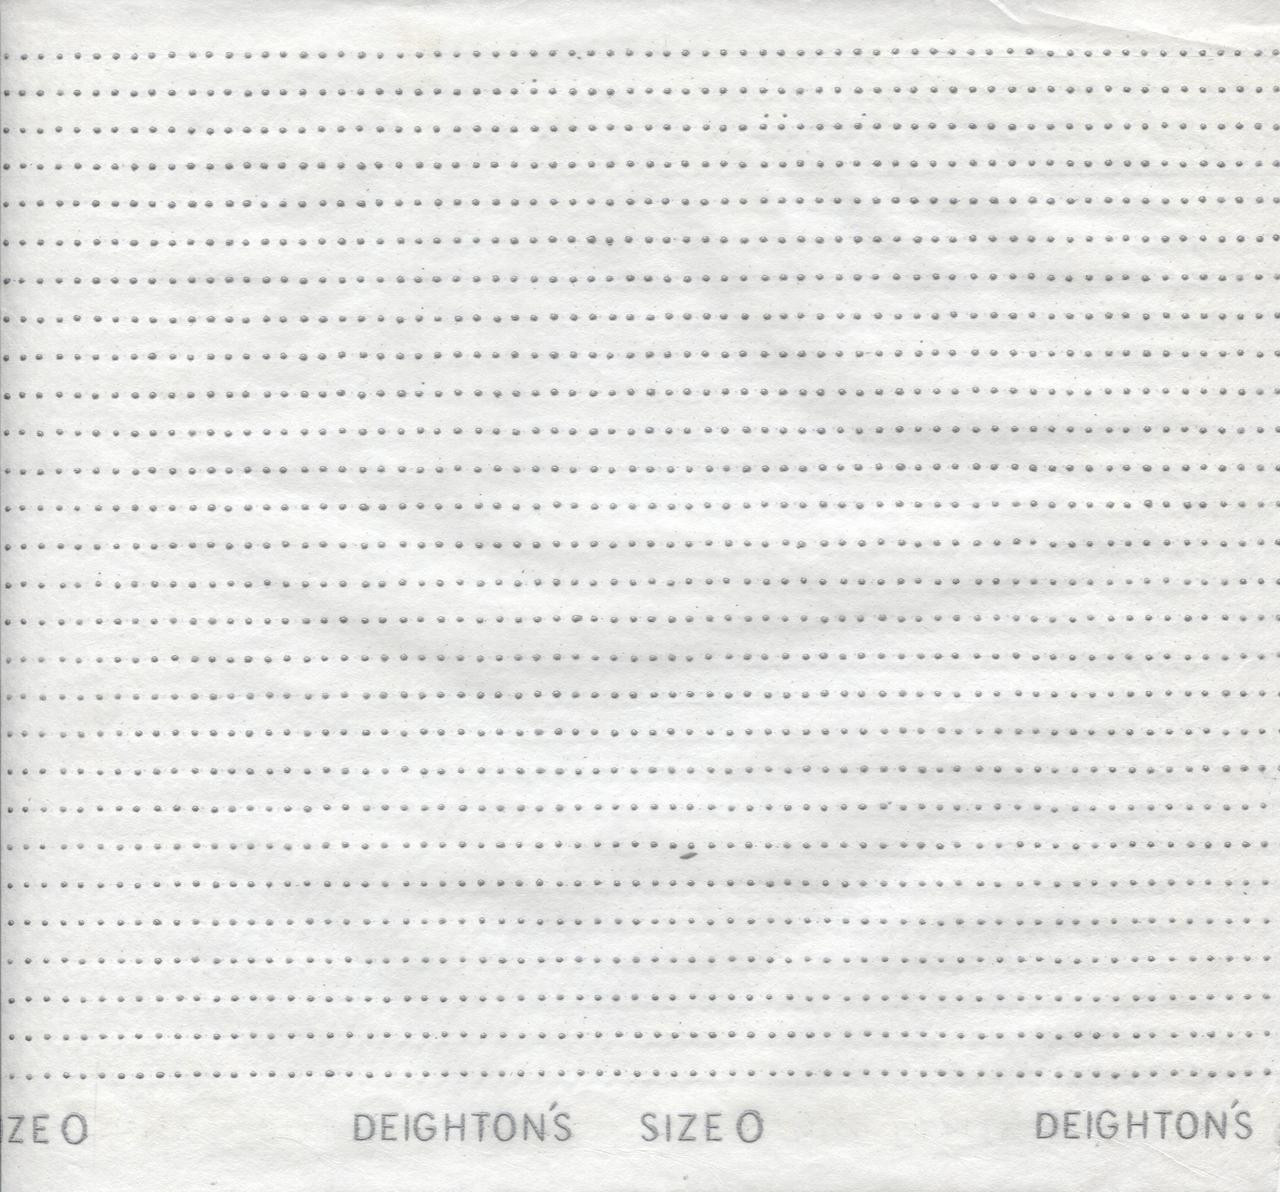 Smocking Transfer Dots - Size 'O' 3 mm x 6.5 mm - see video on how to use - one sheet in each pack - not designed to wash off